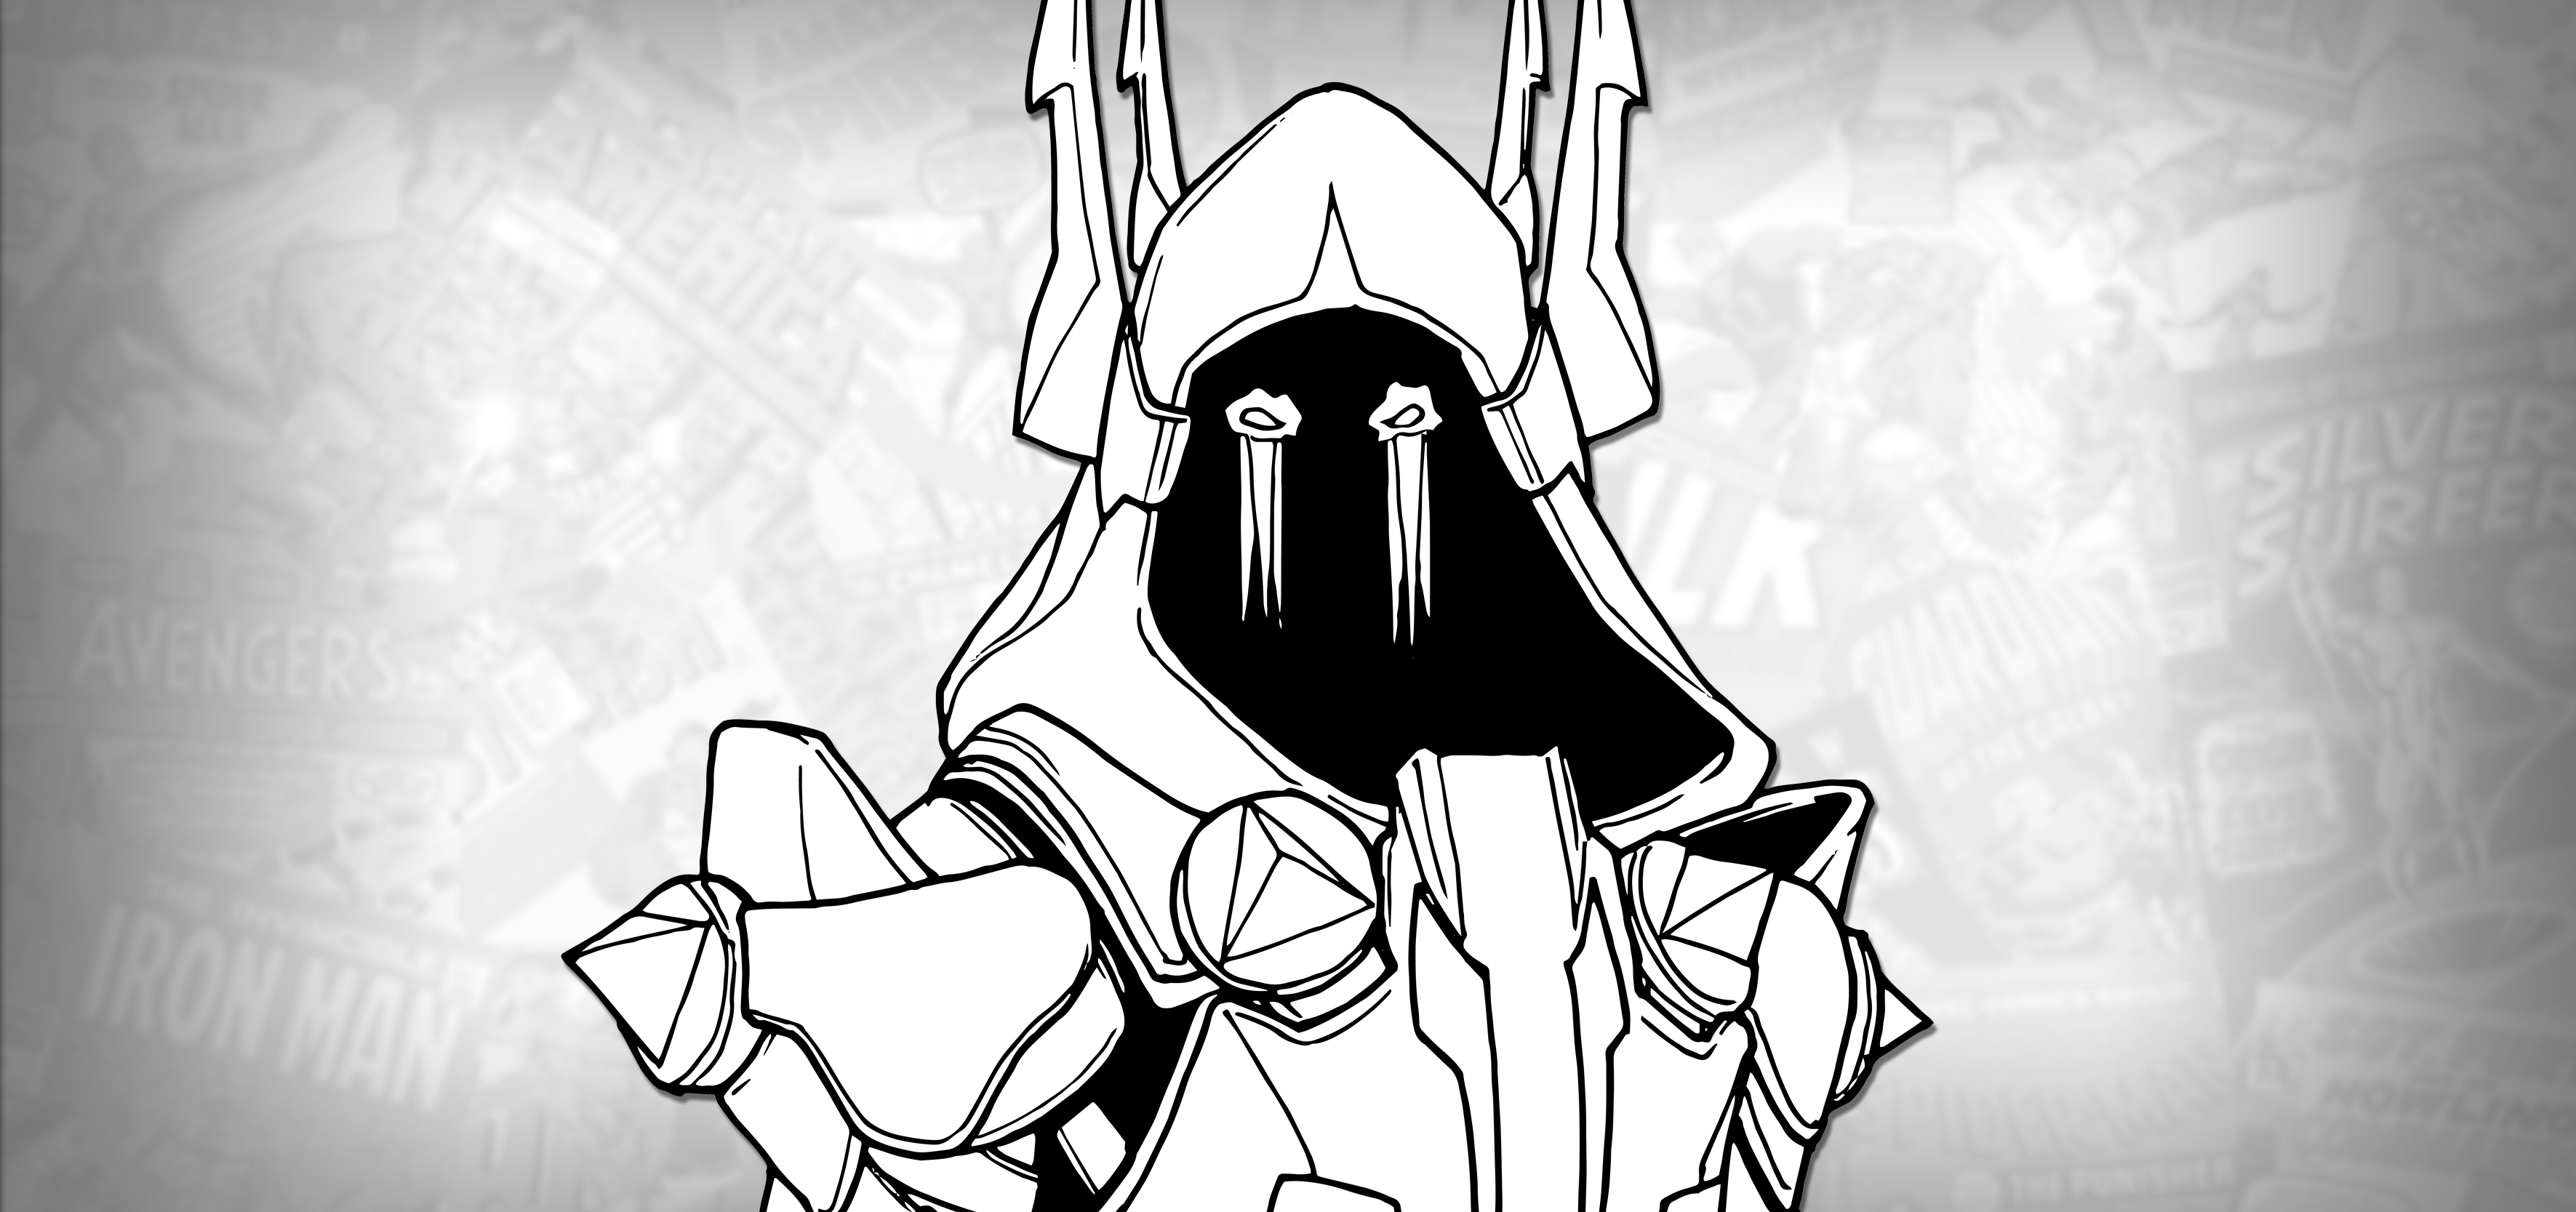 ice king coloring pages fortnite ice king fortnite skin coloring pages king pages fortnite ice coloring